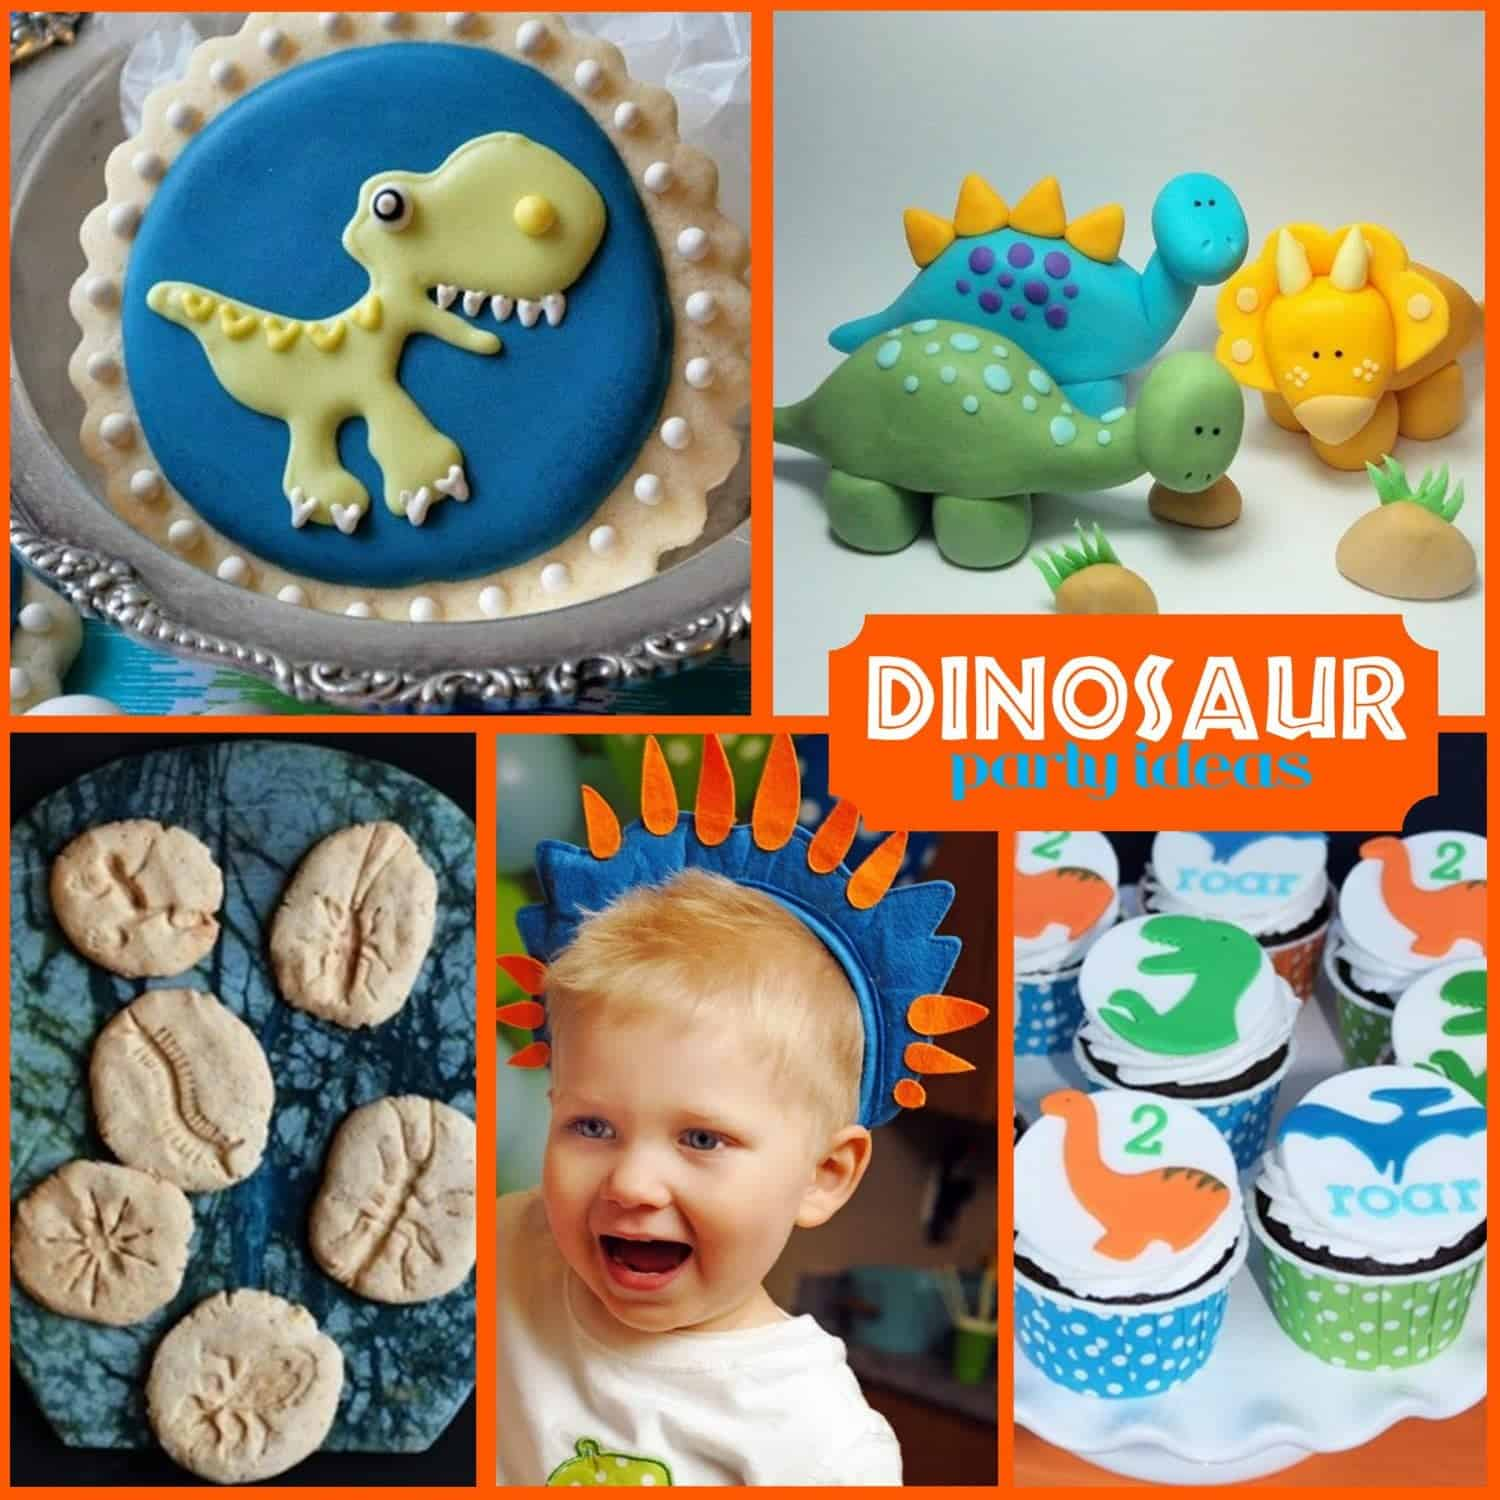 Dinosaur Party:  Ideas for a Paleo-teriific Prehistoric Party